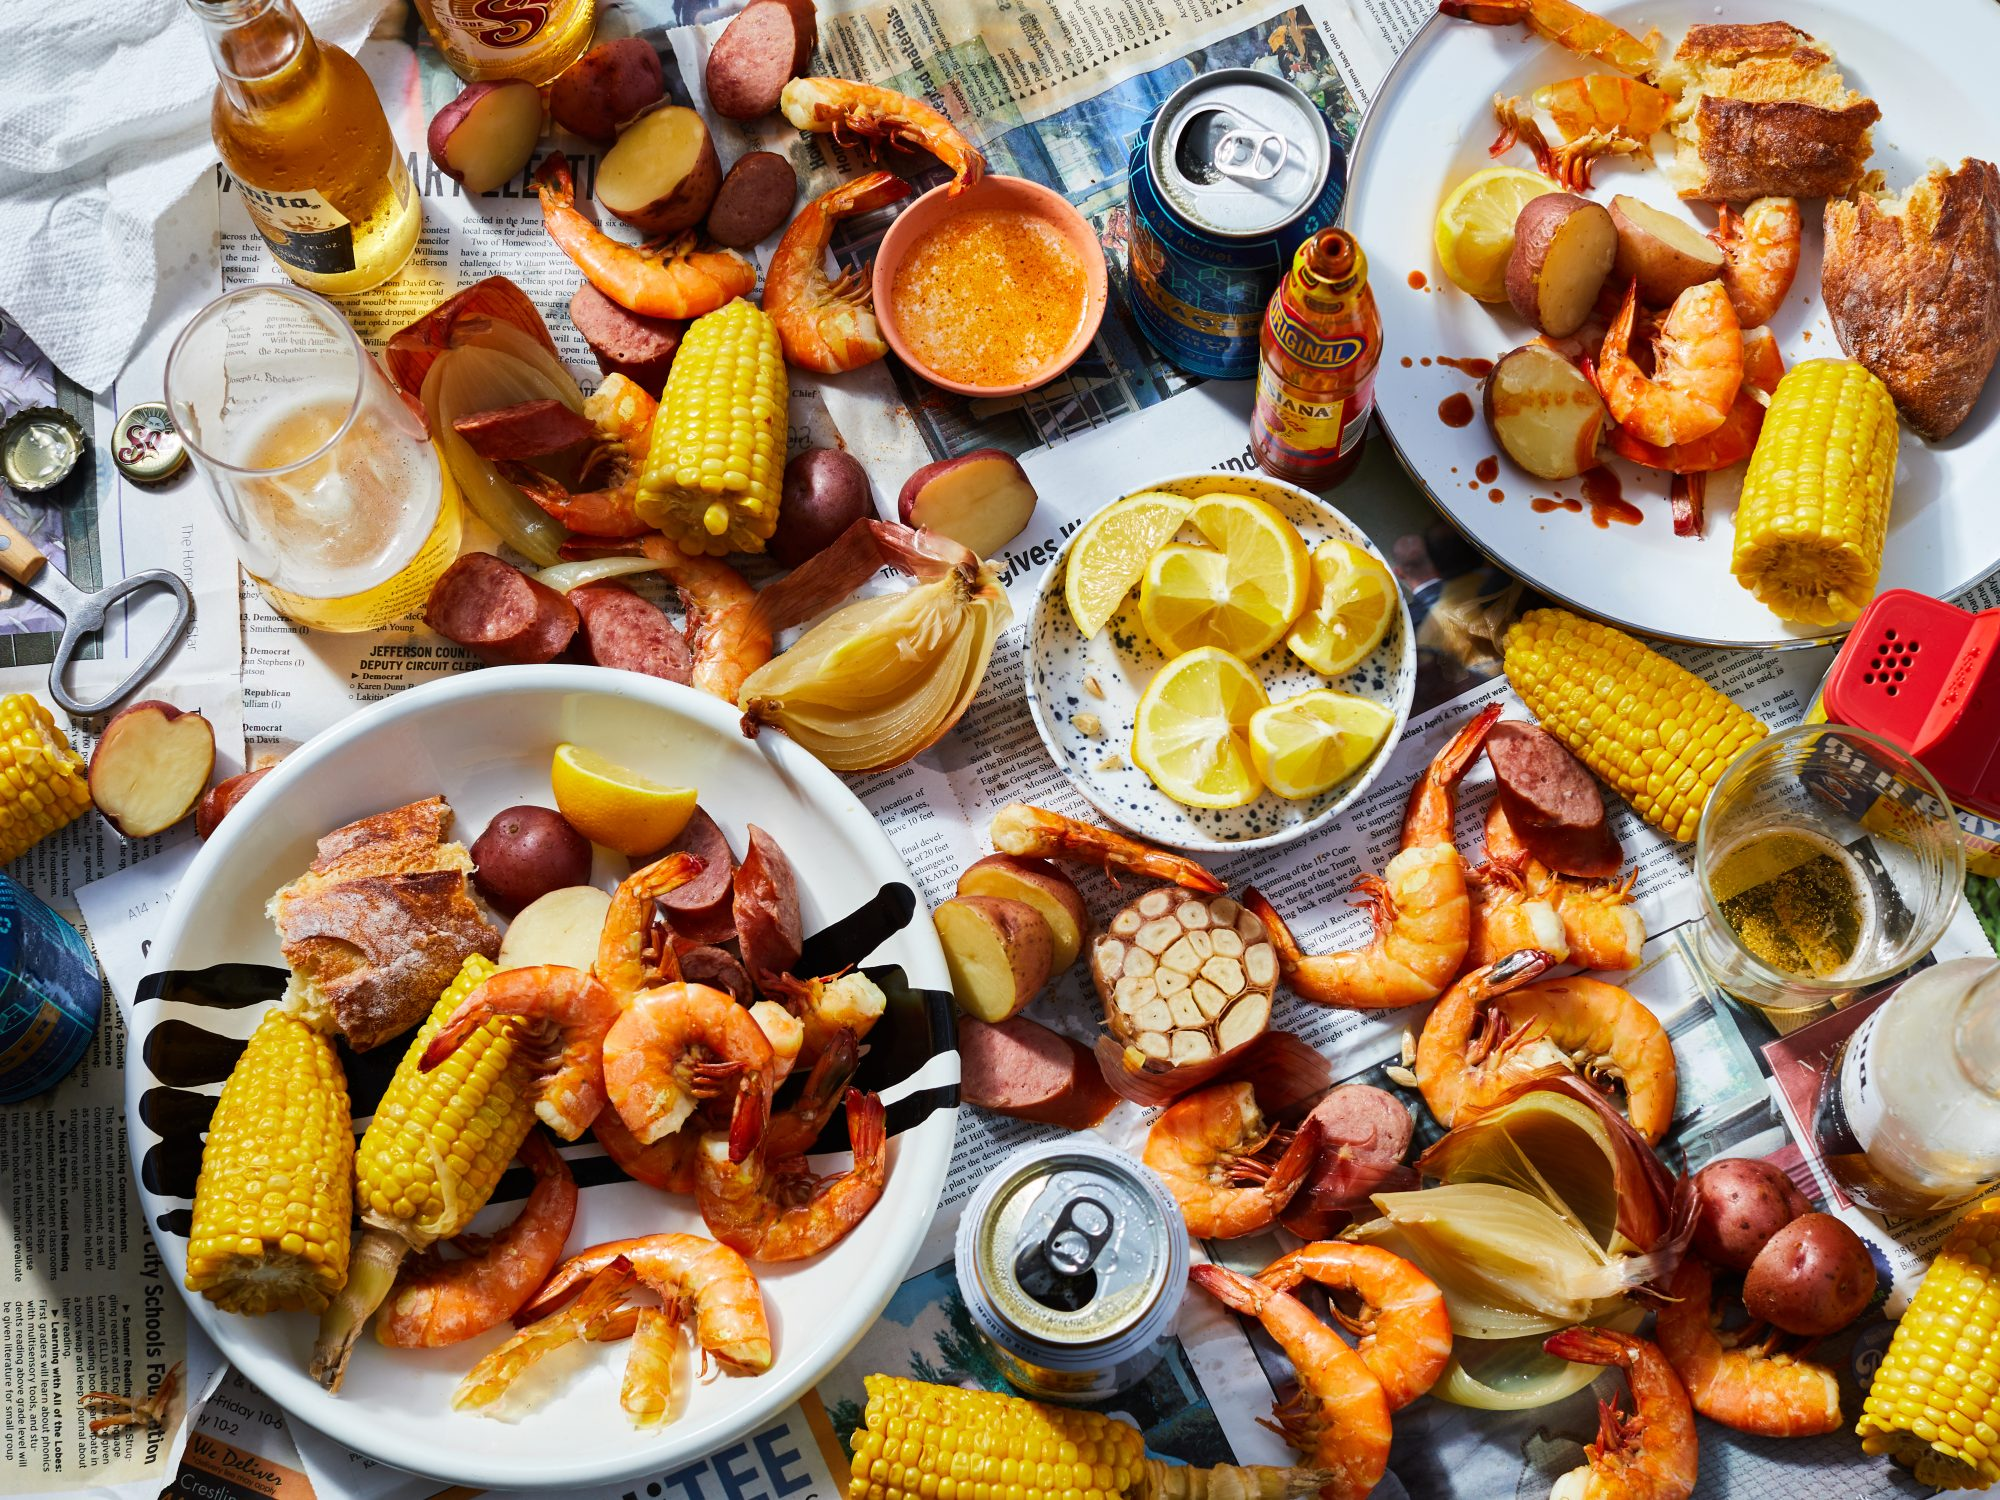 MR_051019_ShrimpBoil79.jpg